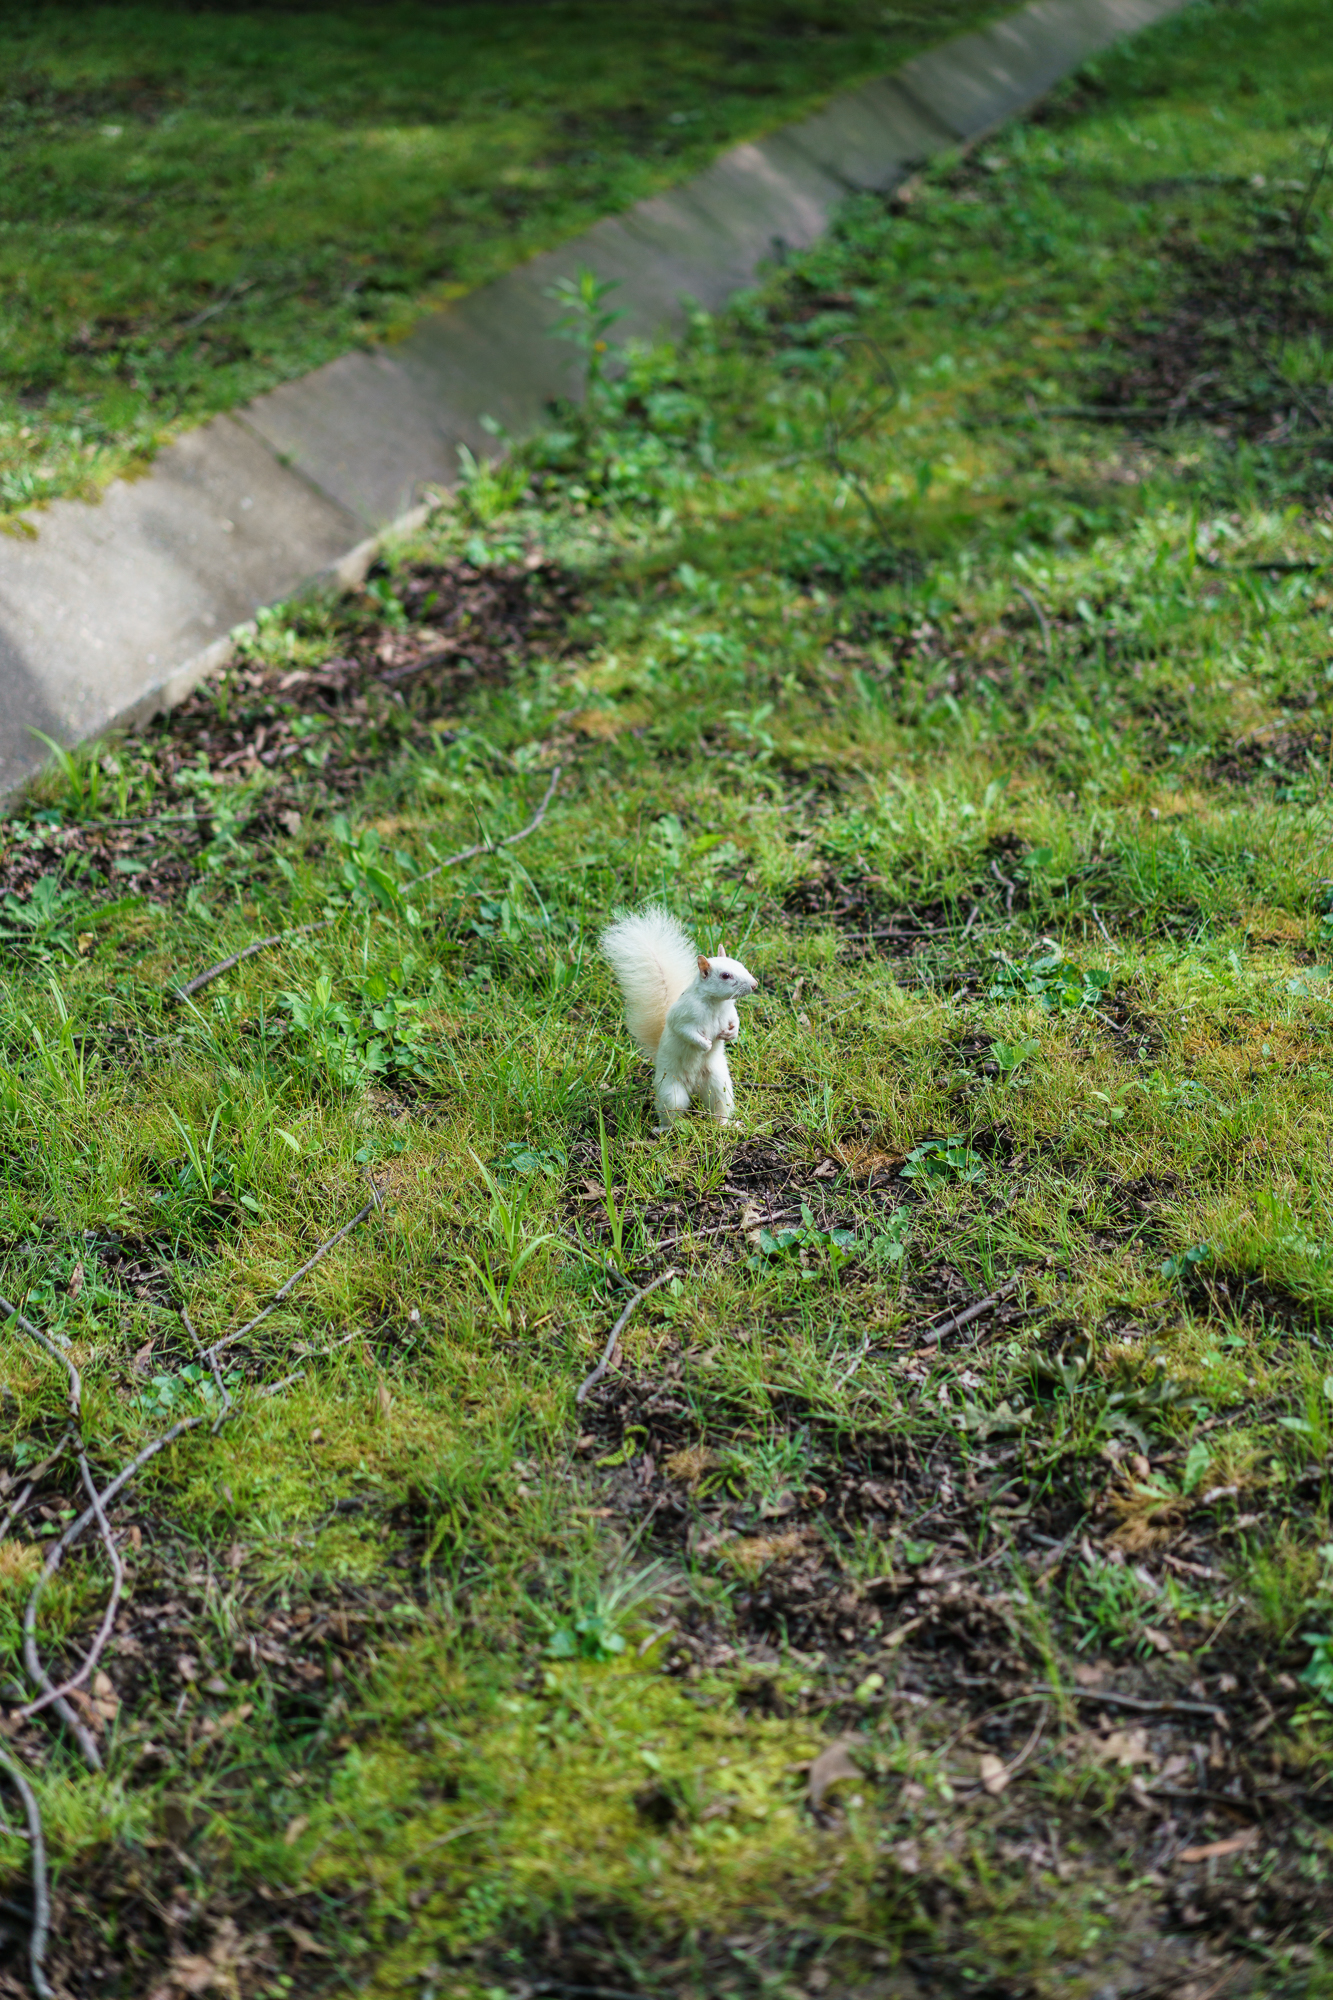 White Squirrel, Olney, Illinois, 2016